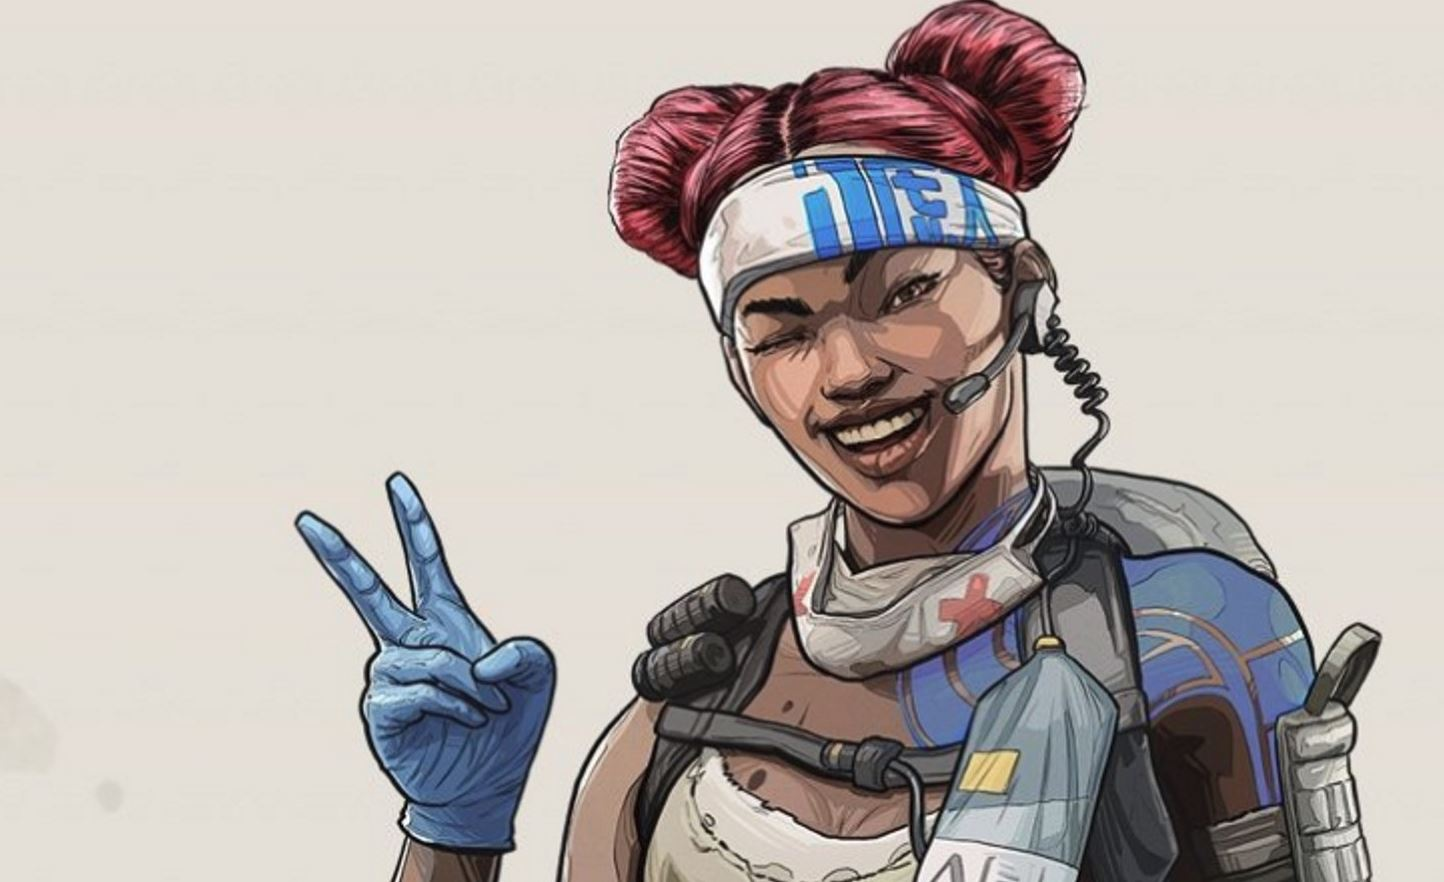 Big changes are coming to Apex Legends' resident medic, Lifeline